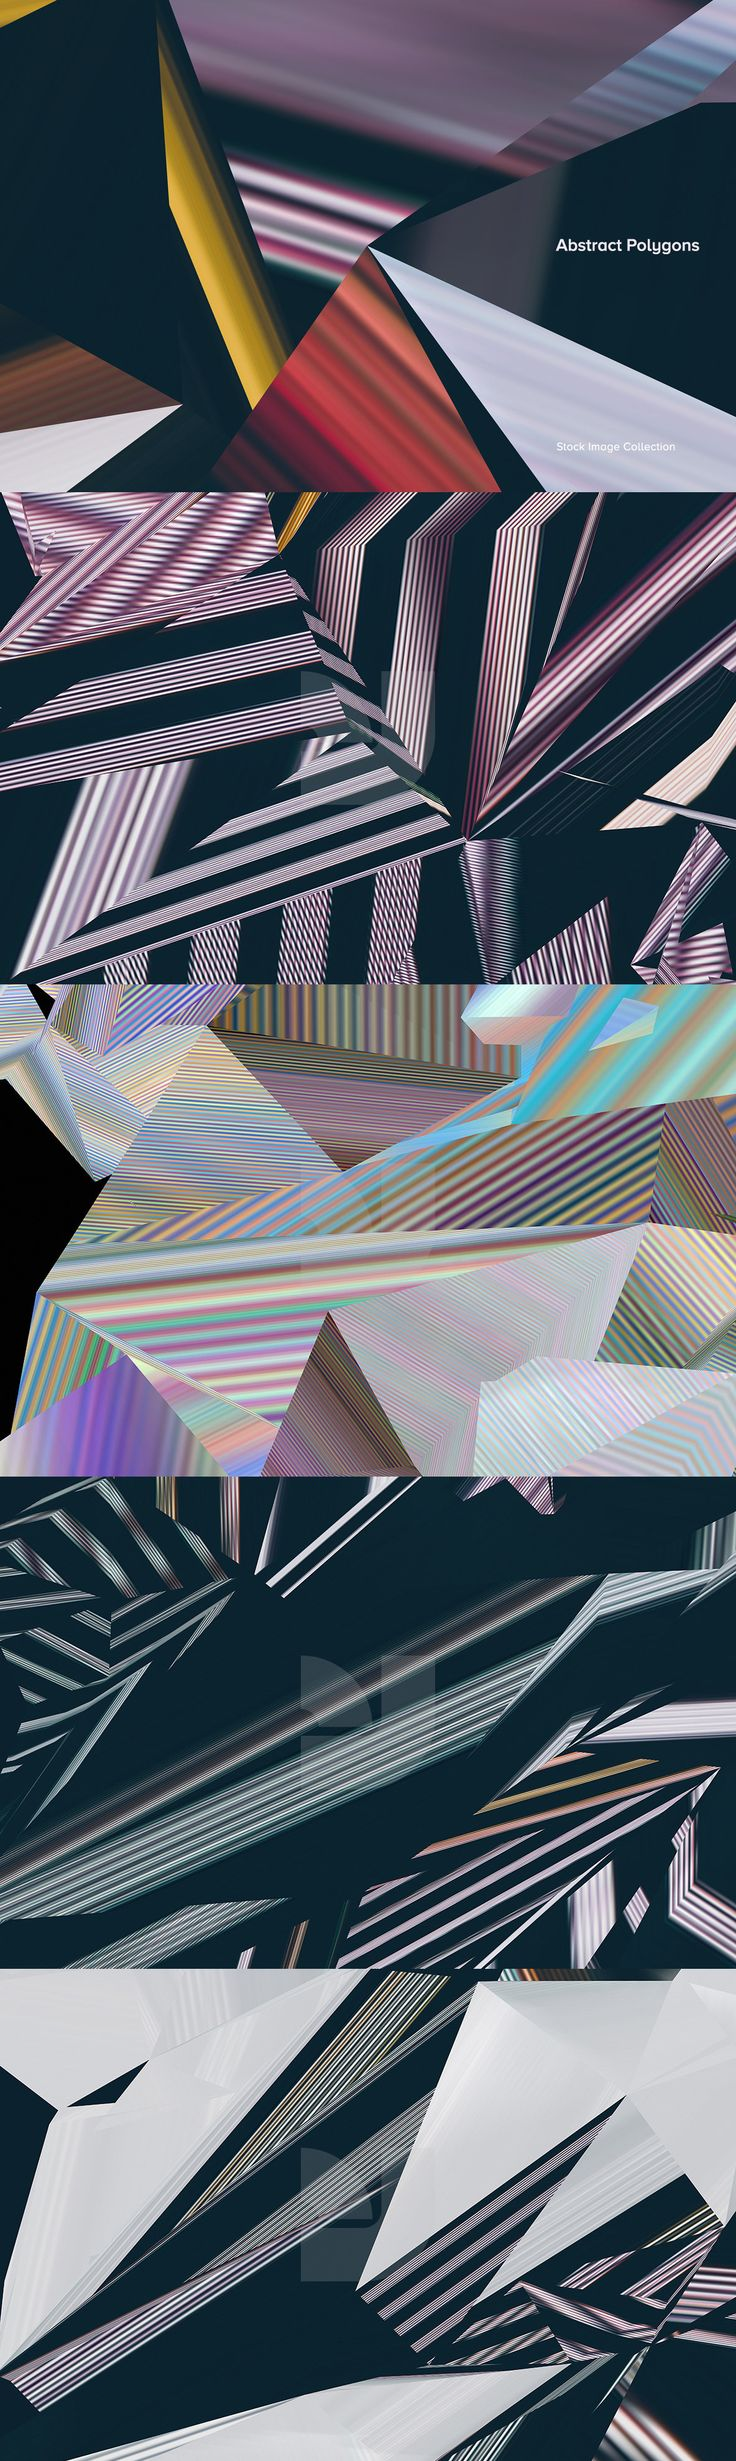 Abstract Polygons - Graphics - YouWorkForThem